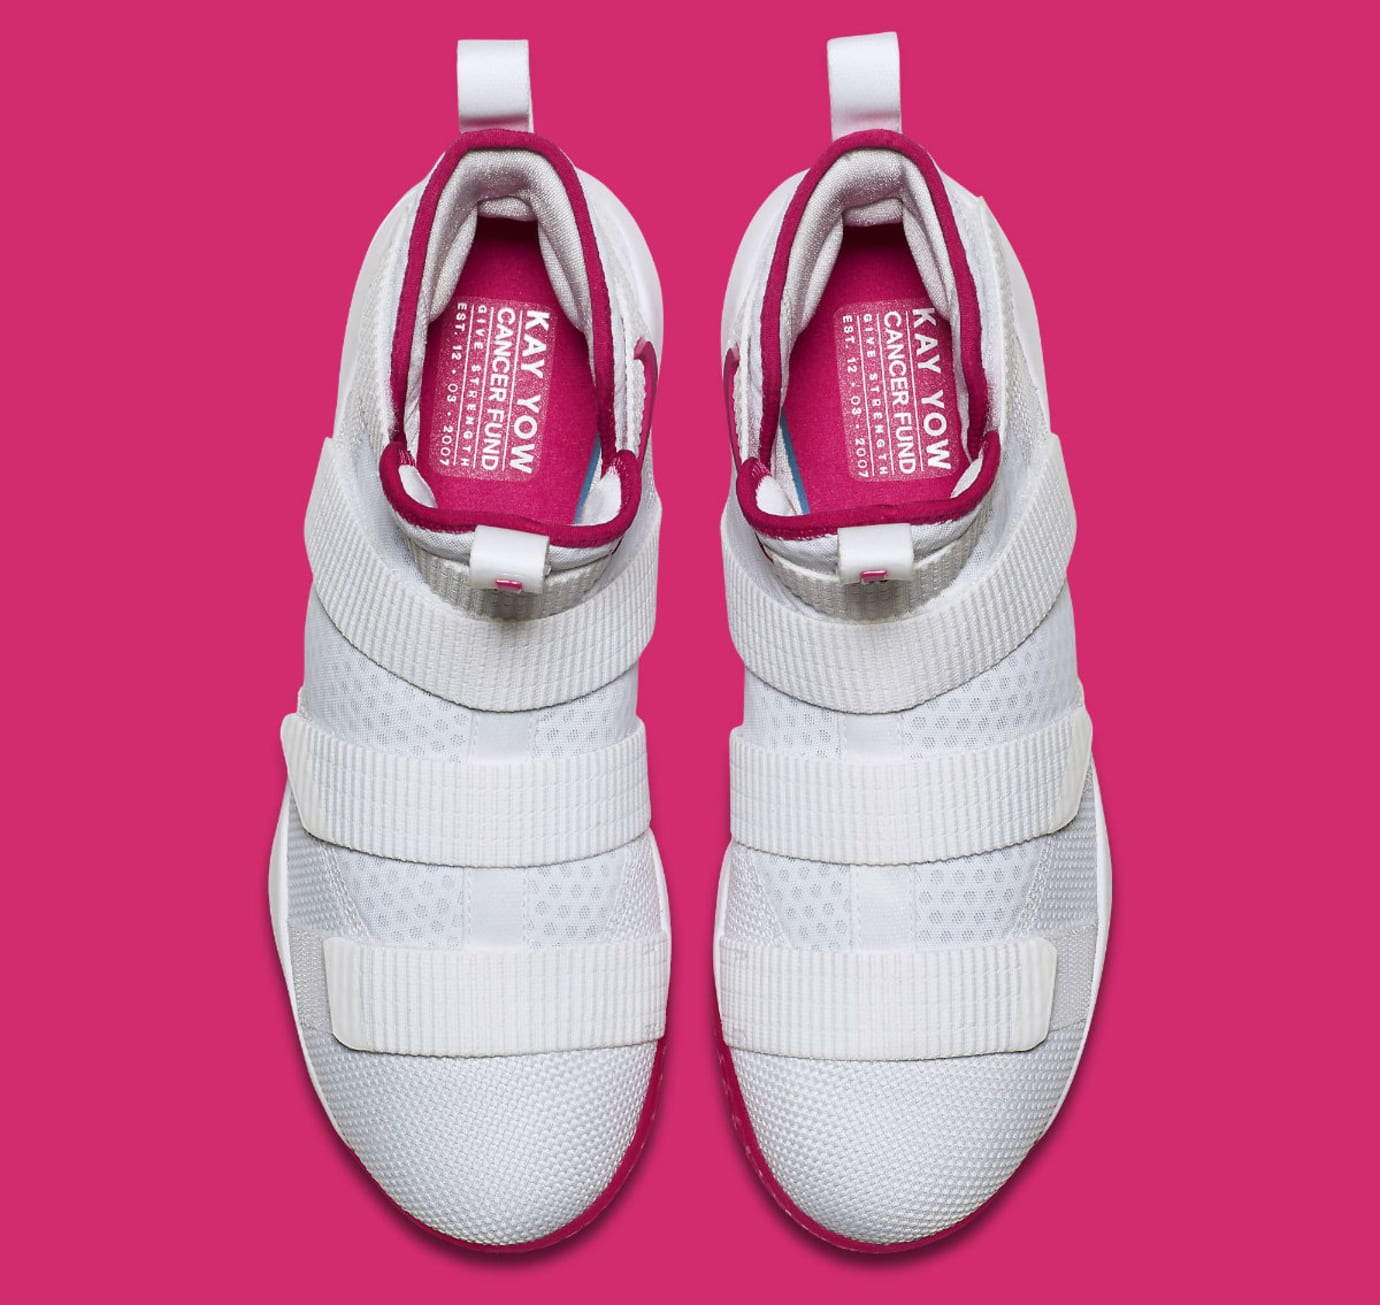 sale retailer 7675d bca50 Nike LeBron Soldier 11 Kay Yow Breast Cancer Awareness ...